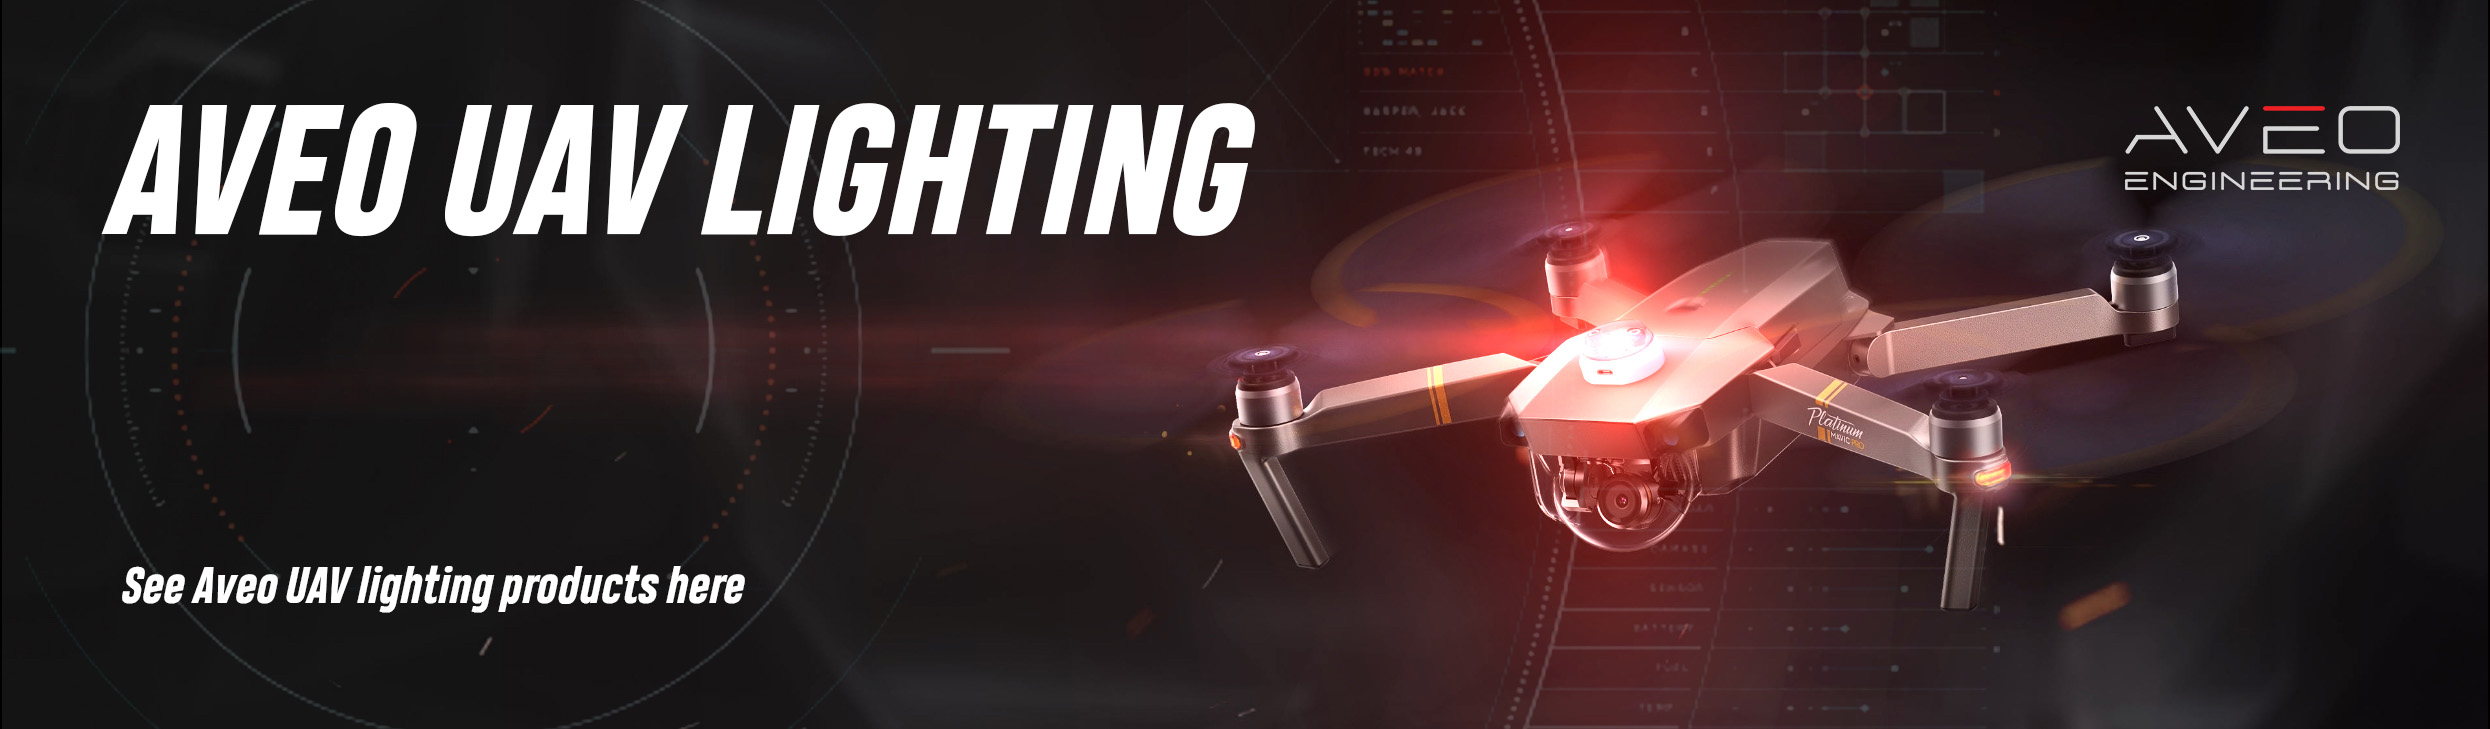 Aveo UAV Lighting